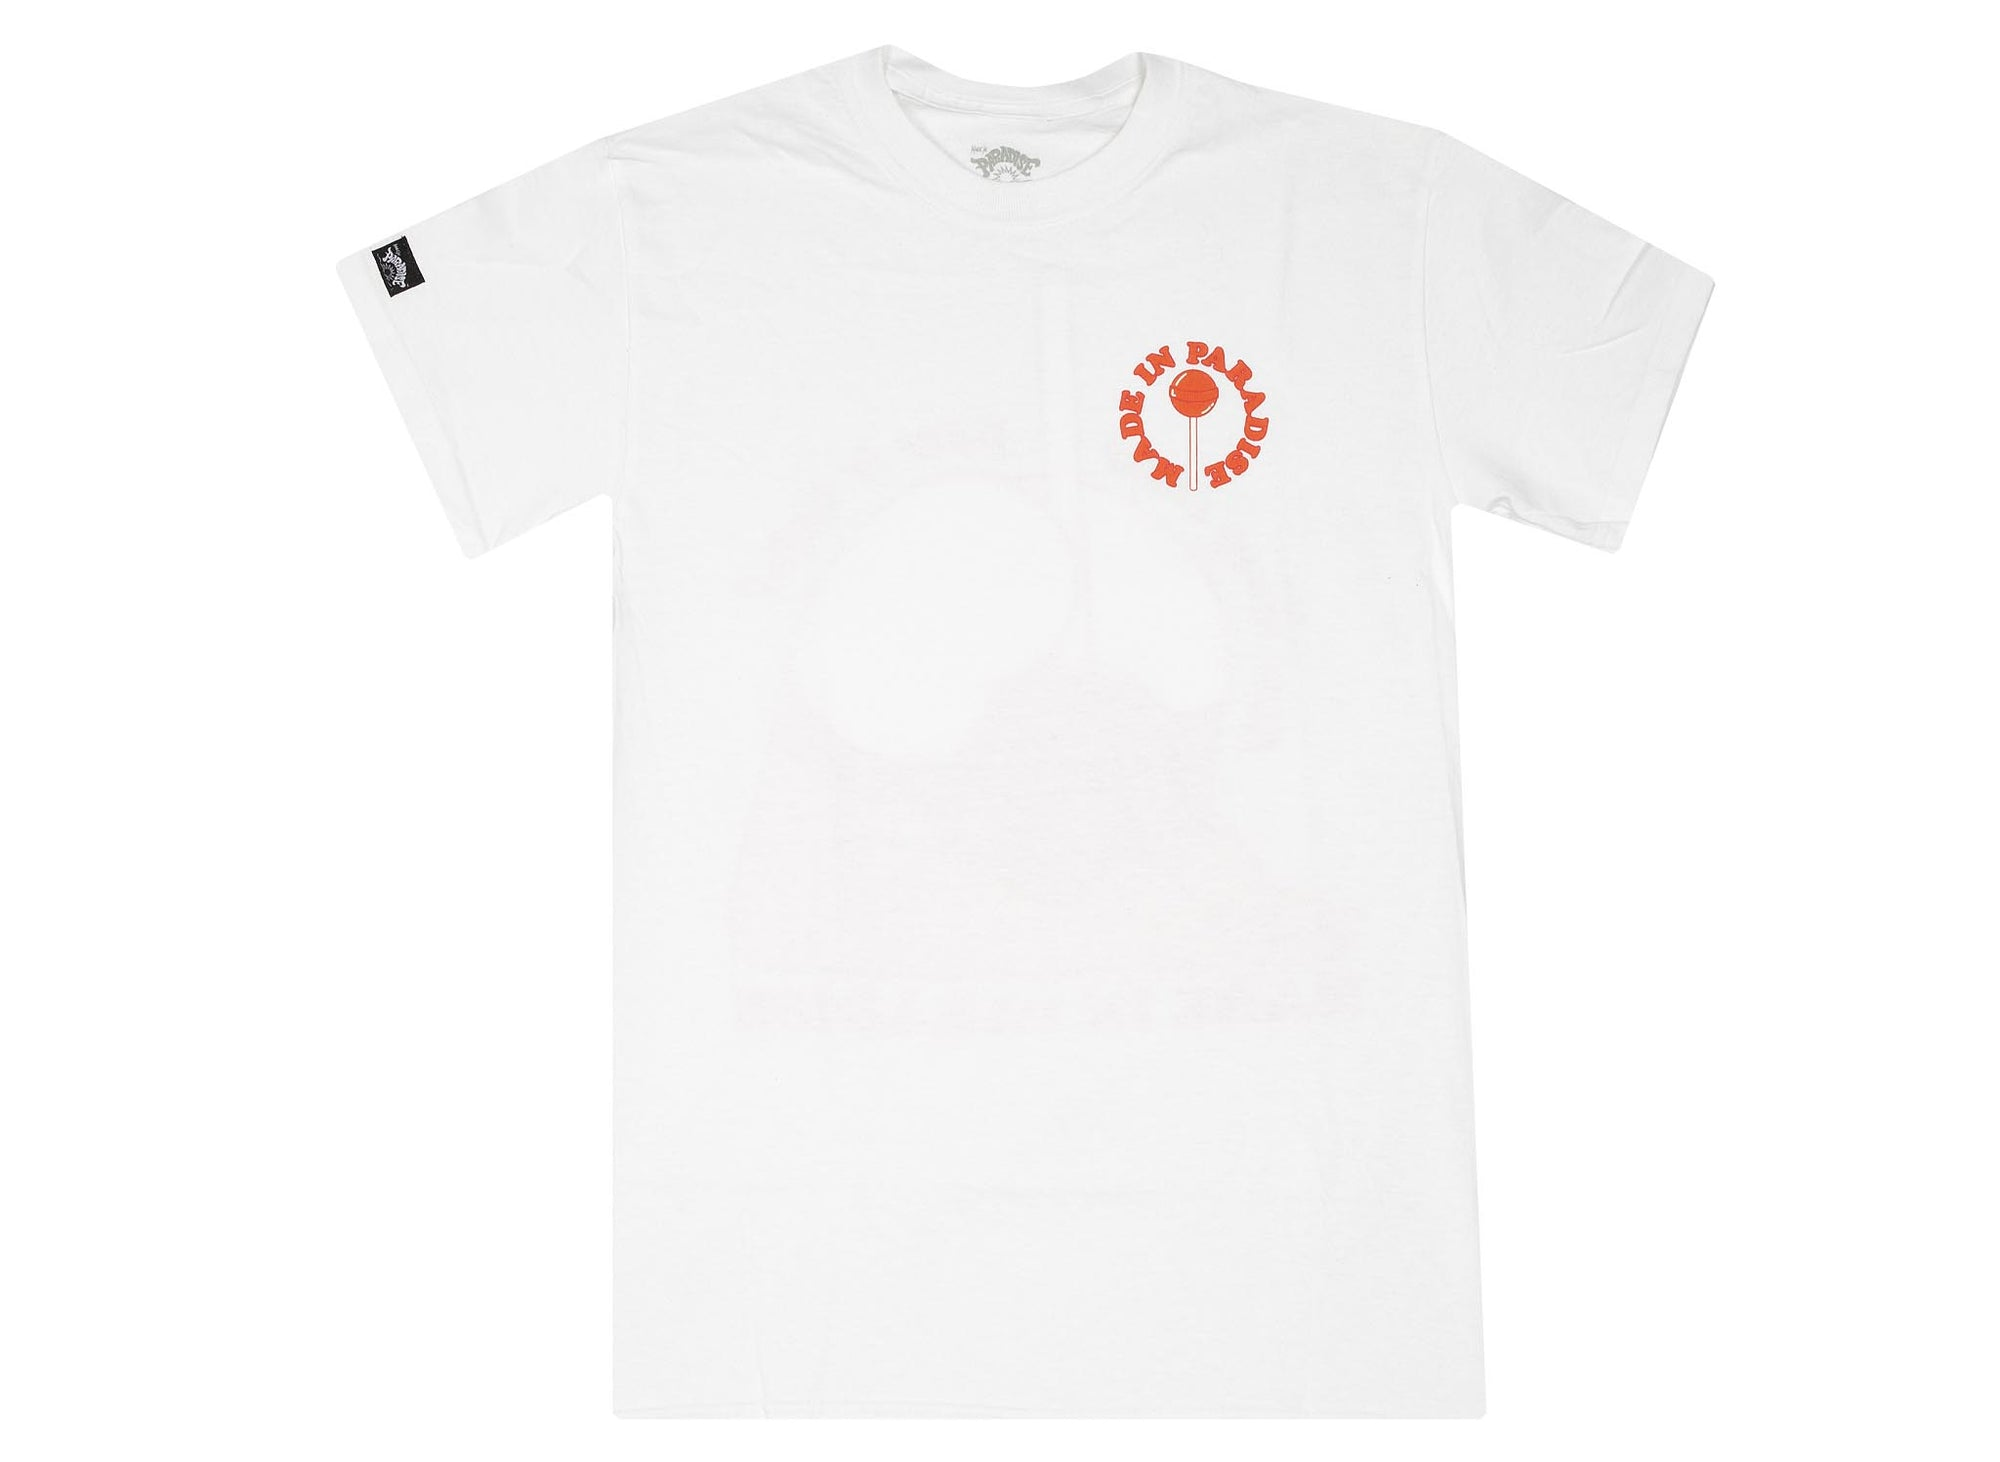 MADE IN PARADISE SUCKER T-SHIRT